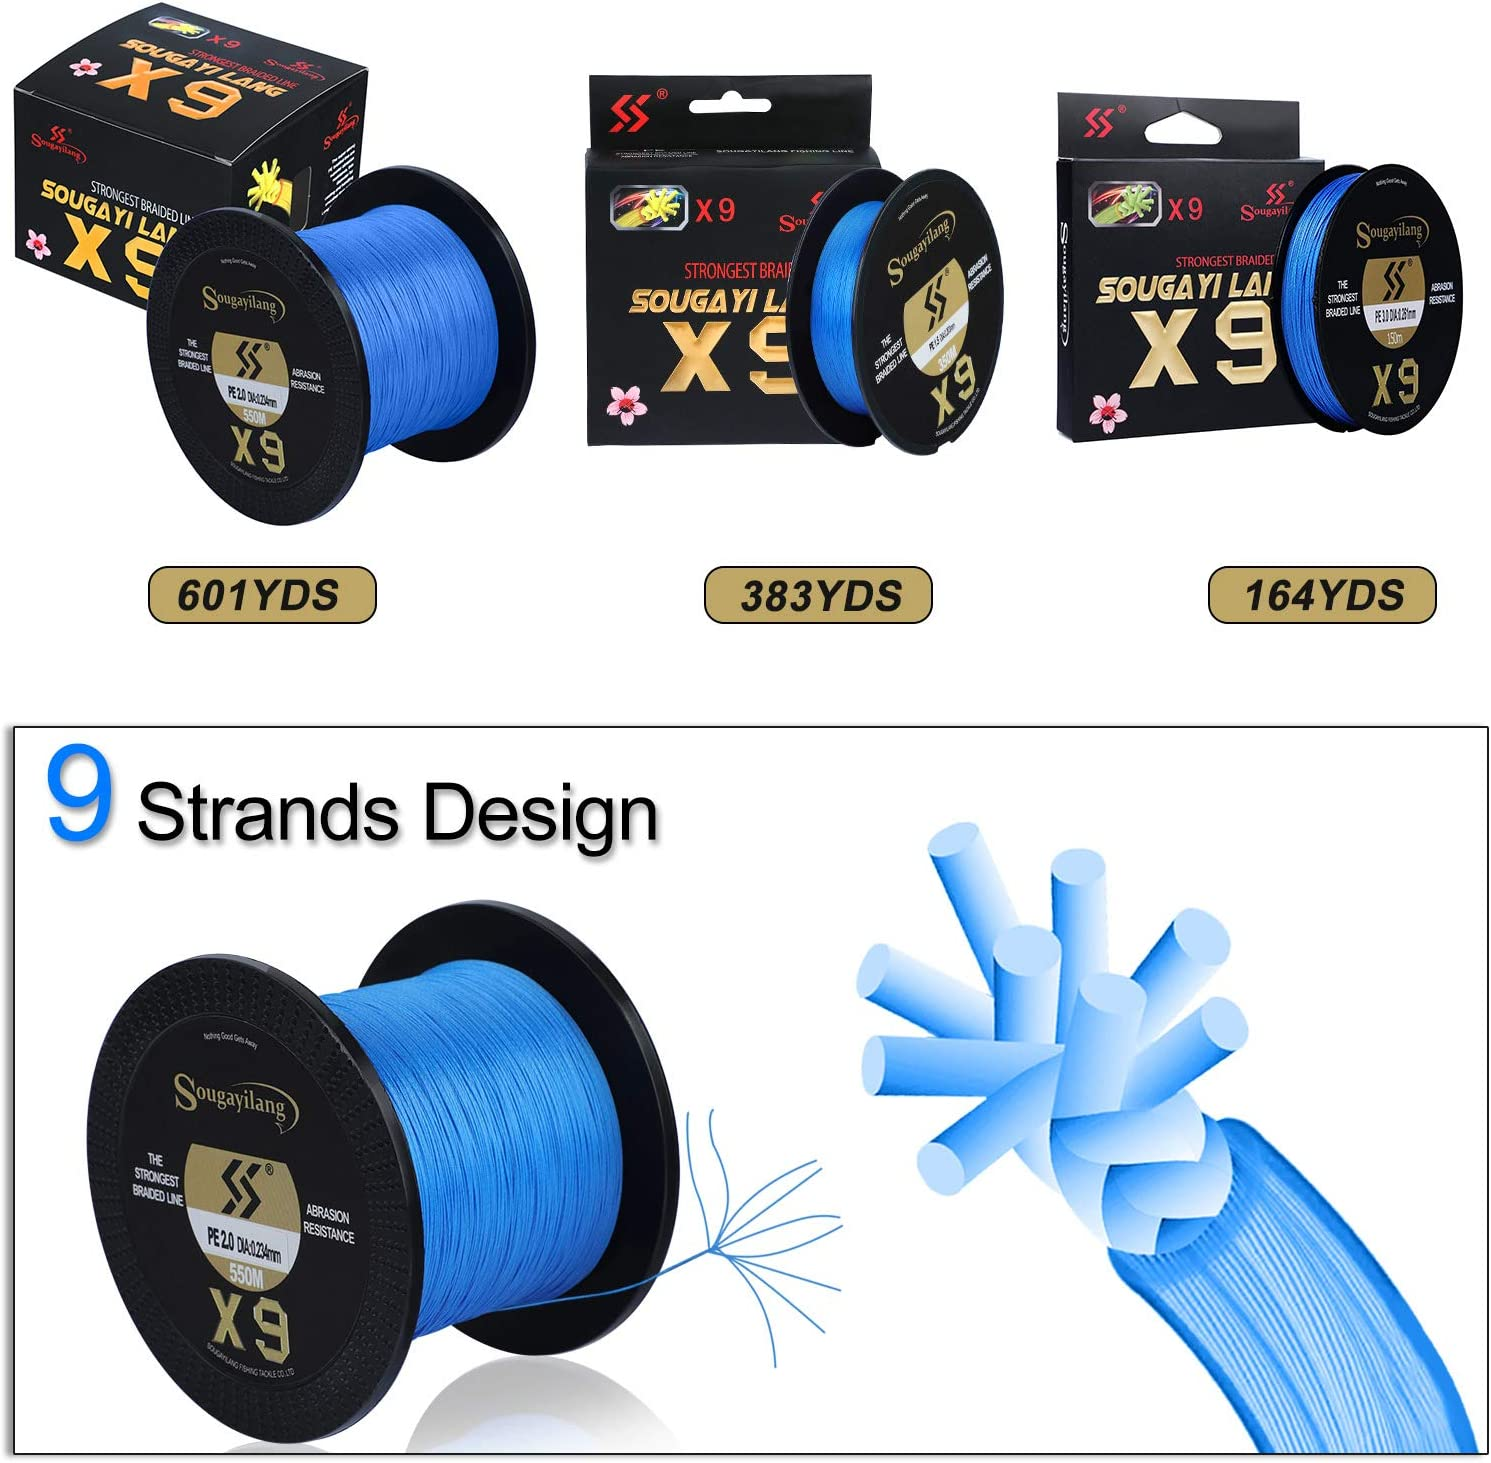 Sougayilang 12 Strands Braided Fishing Line Abrasion Resistant 20LB Braided Lines Incredible Super Strong PE Fishing Lines Braid 9 Strands